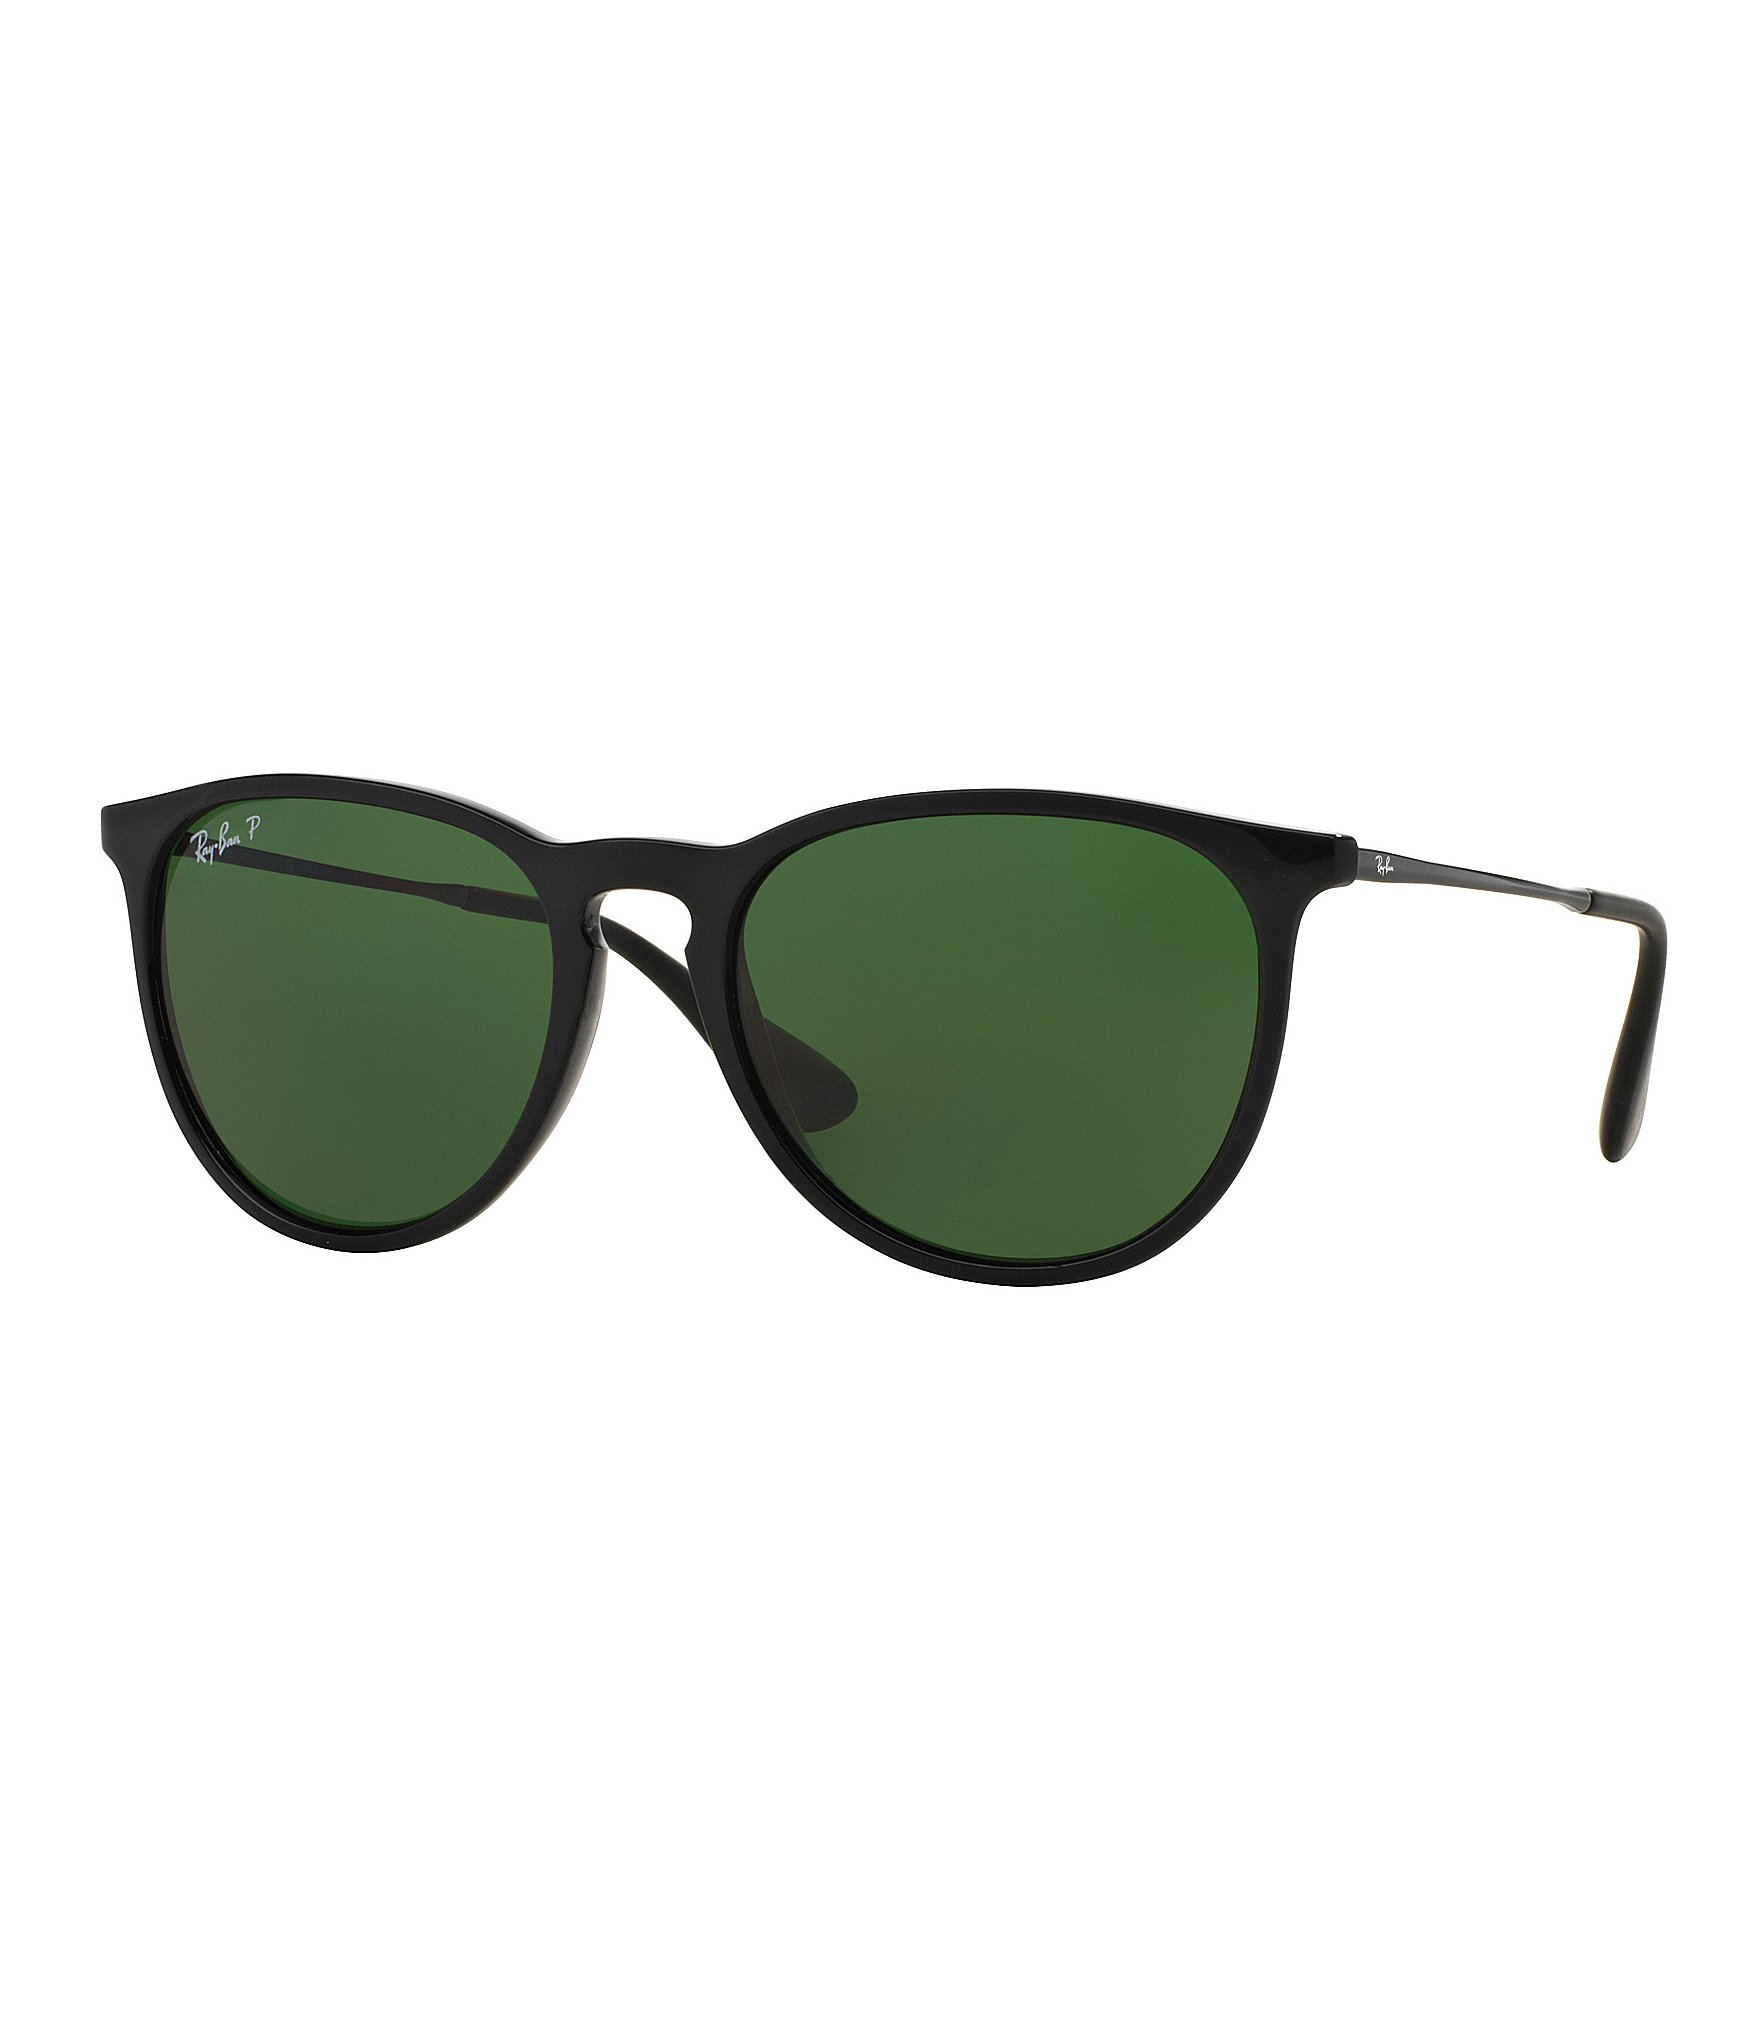 ray ban erika polarized round sunglasses in green lyst. Black Bedroom Furniture Sets. Home Design Ideas